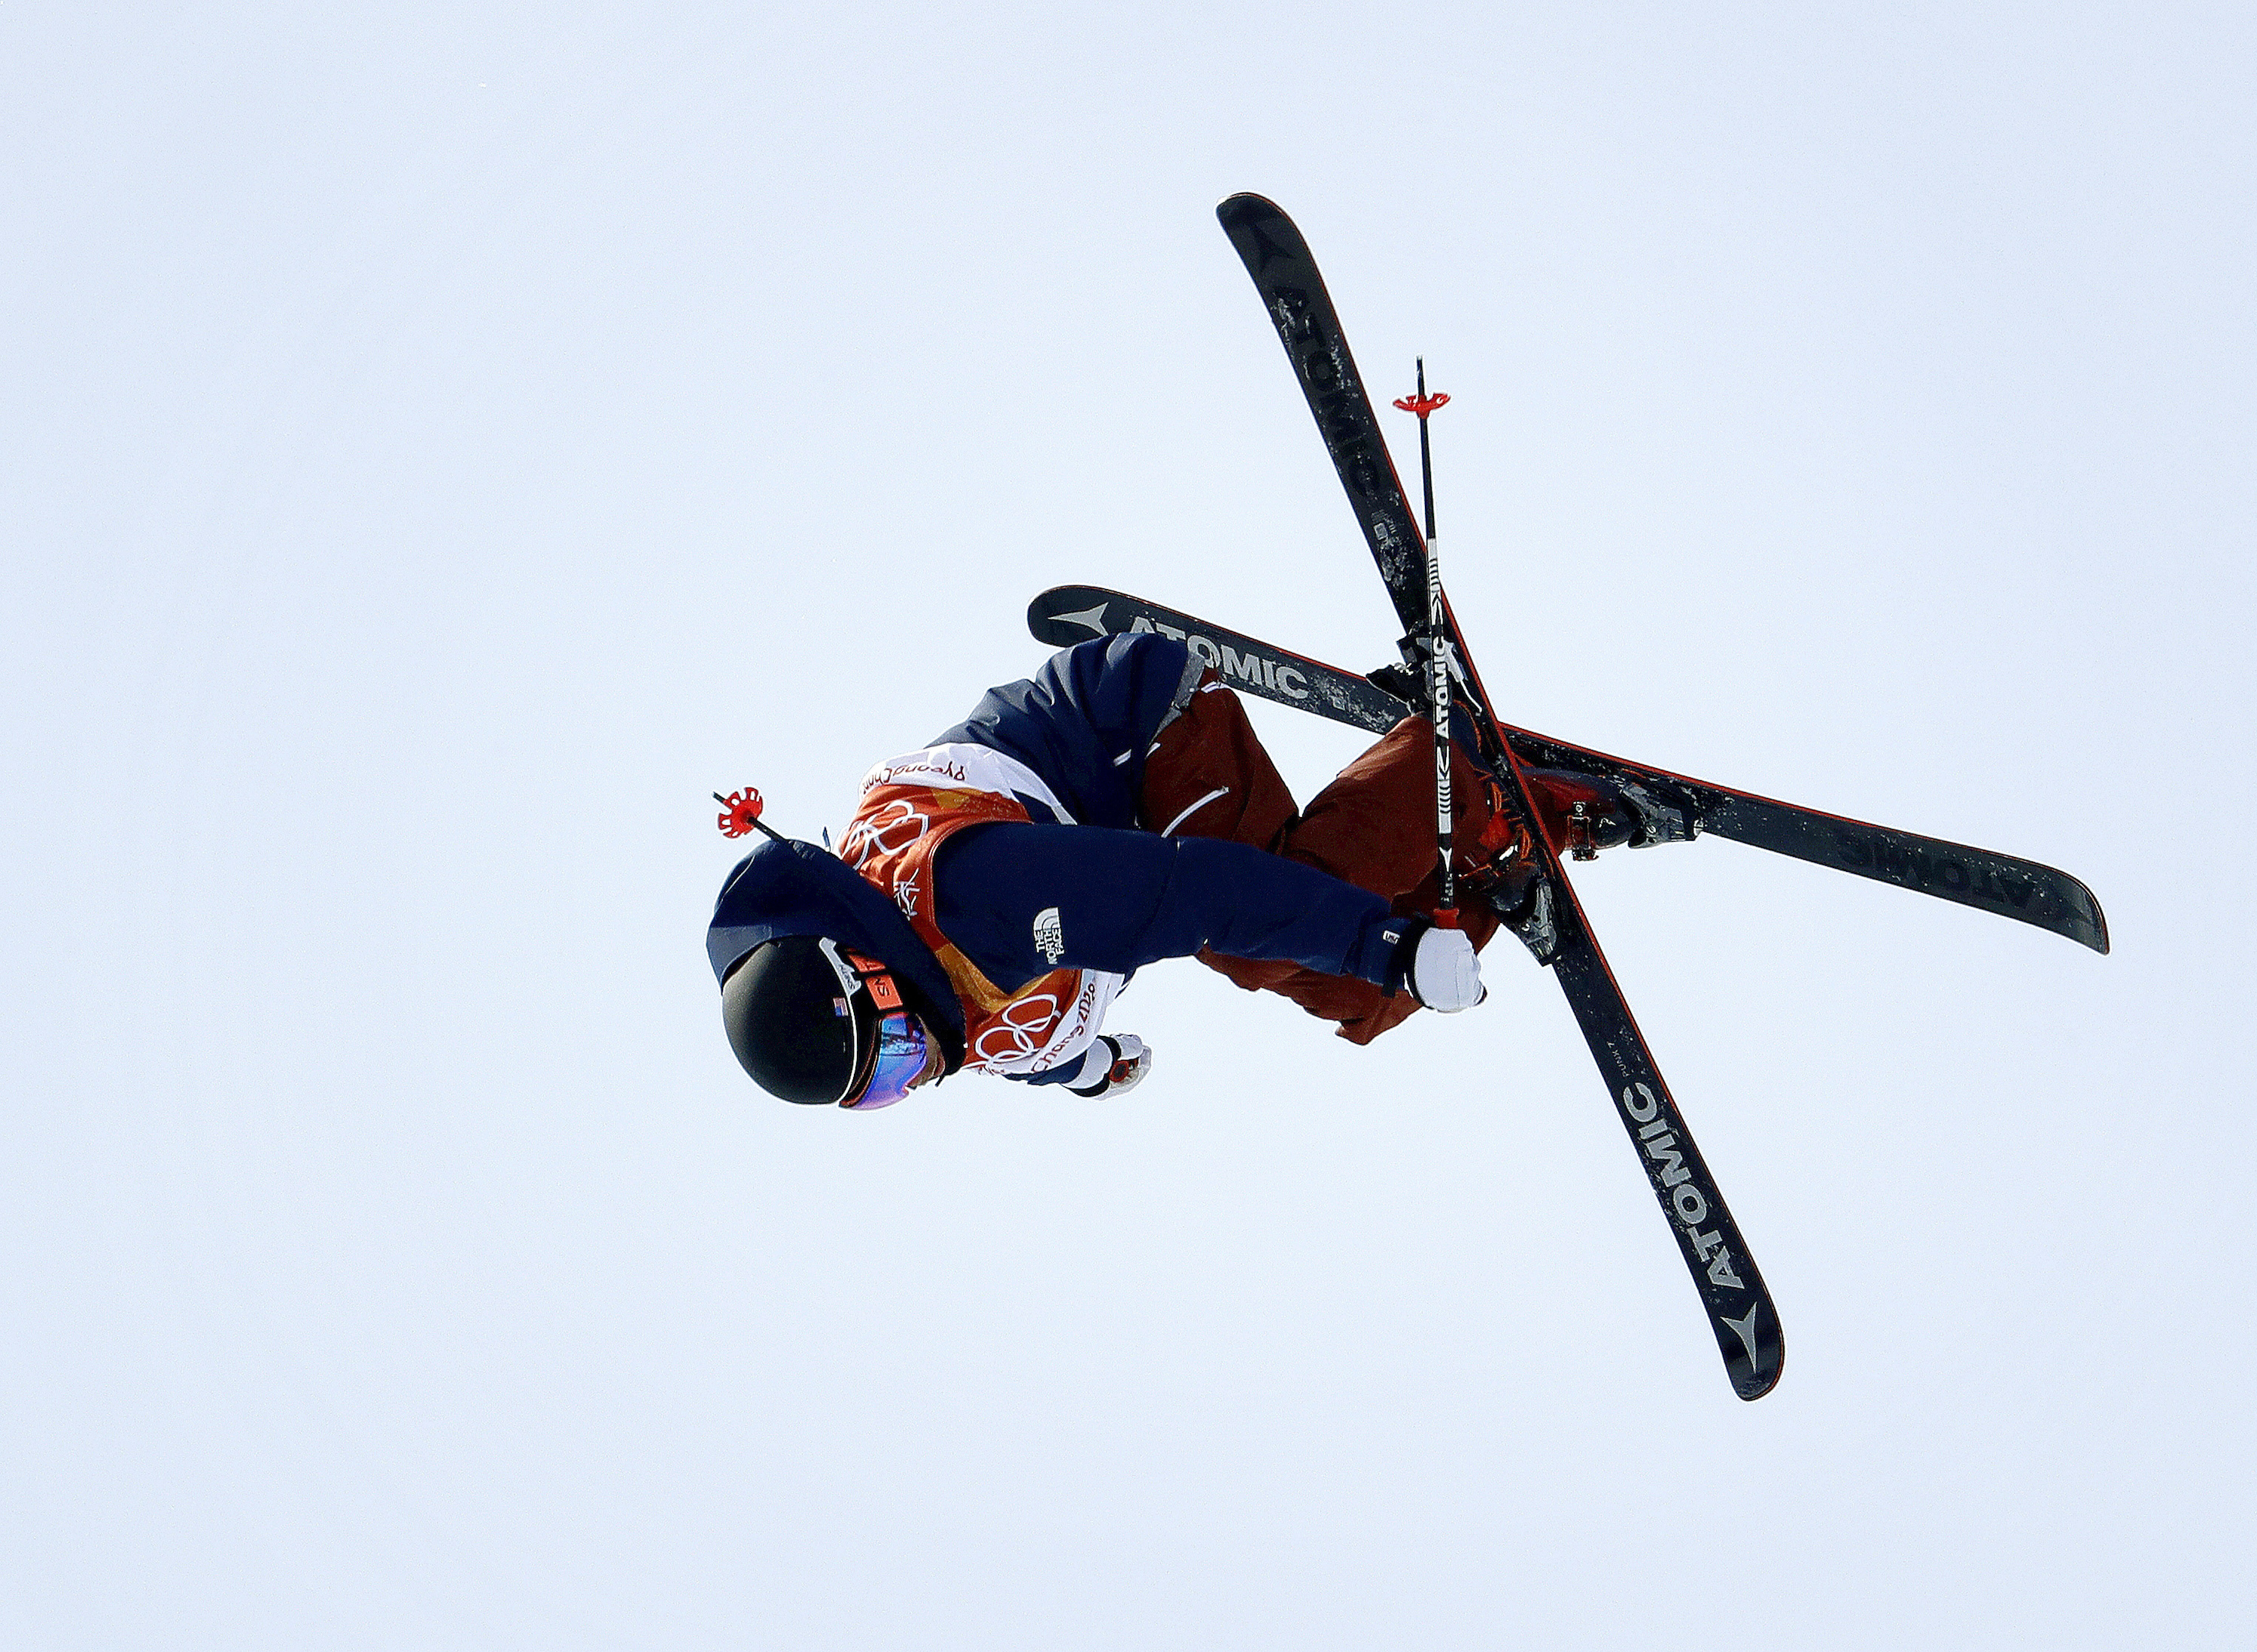 Photo: Gus Kenworthy 2018 Winter Olympics (AP)